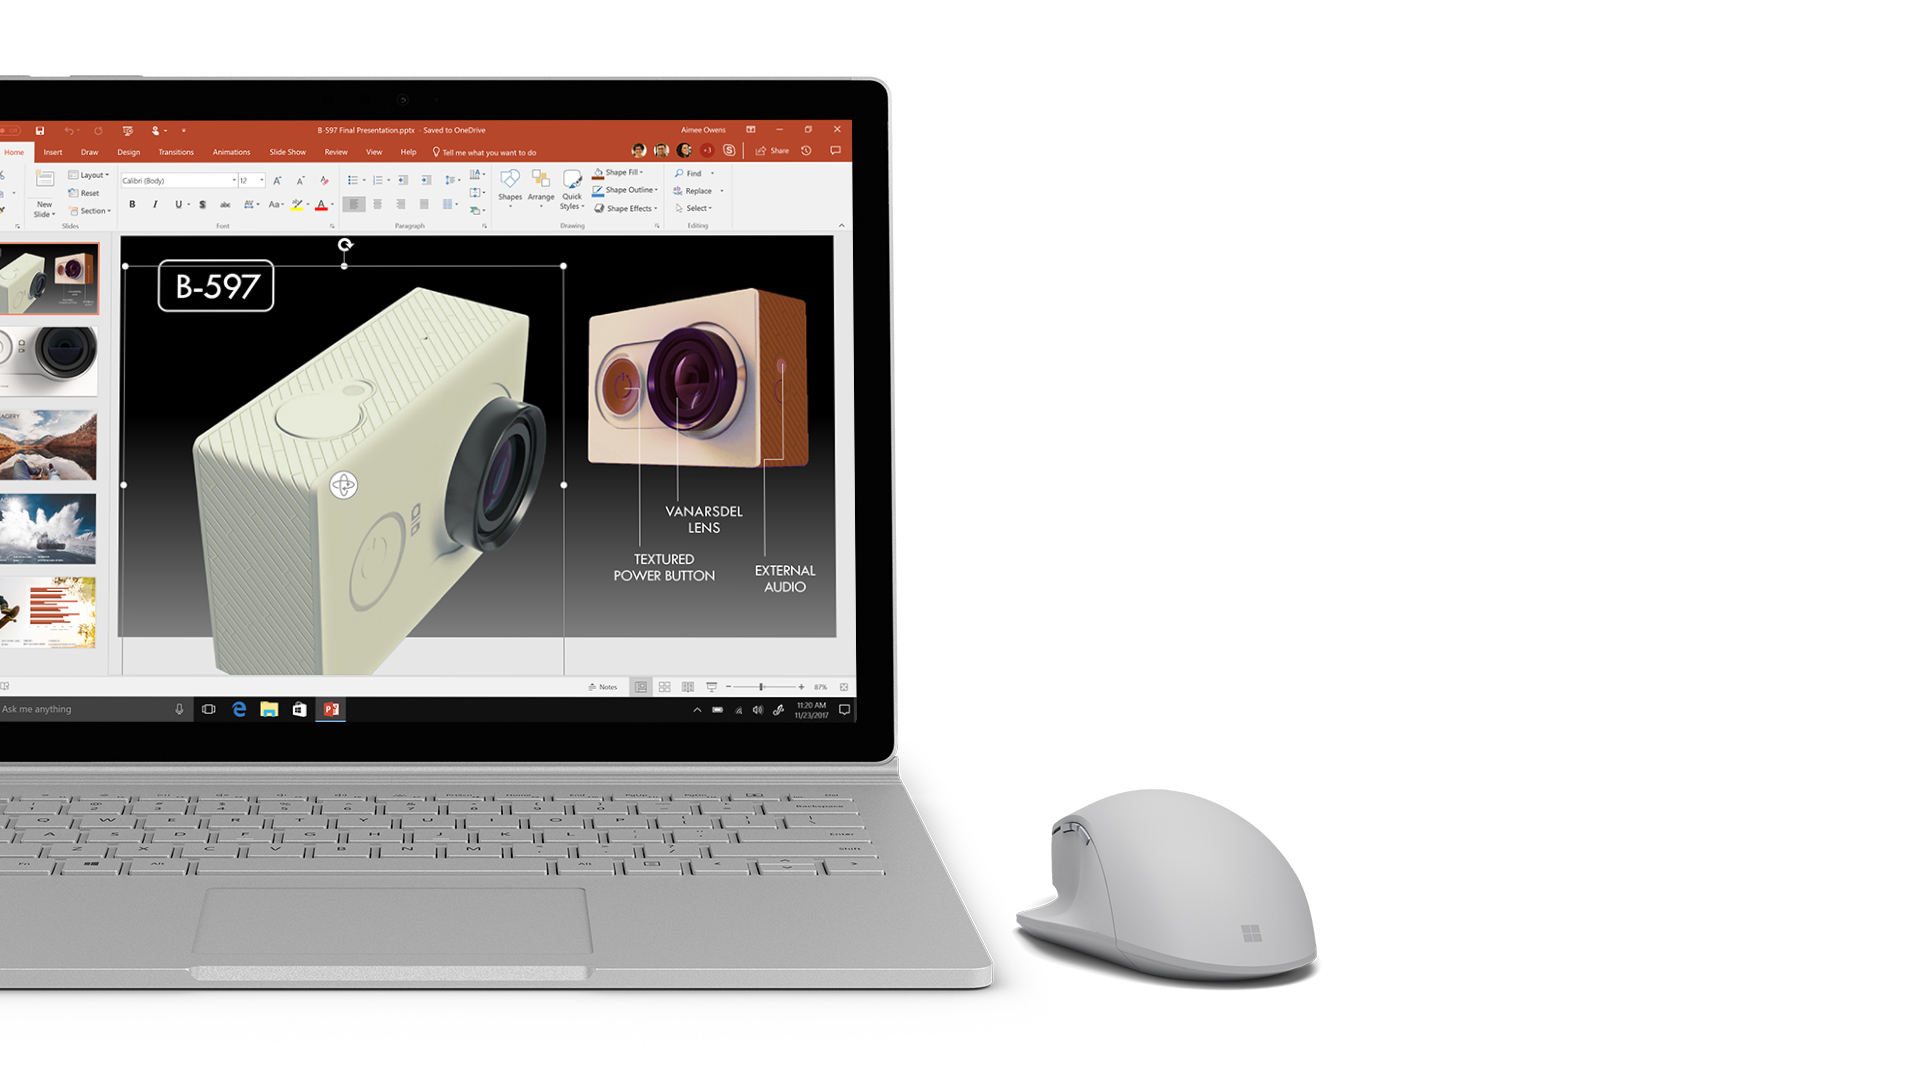 Surface 显示 PowerPoint 屏幕截图。